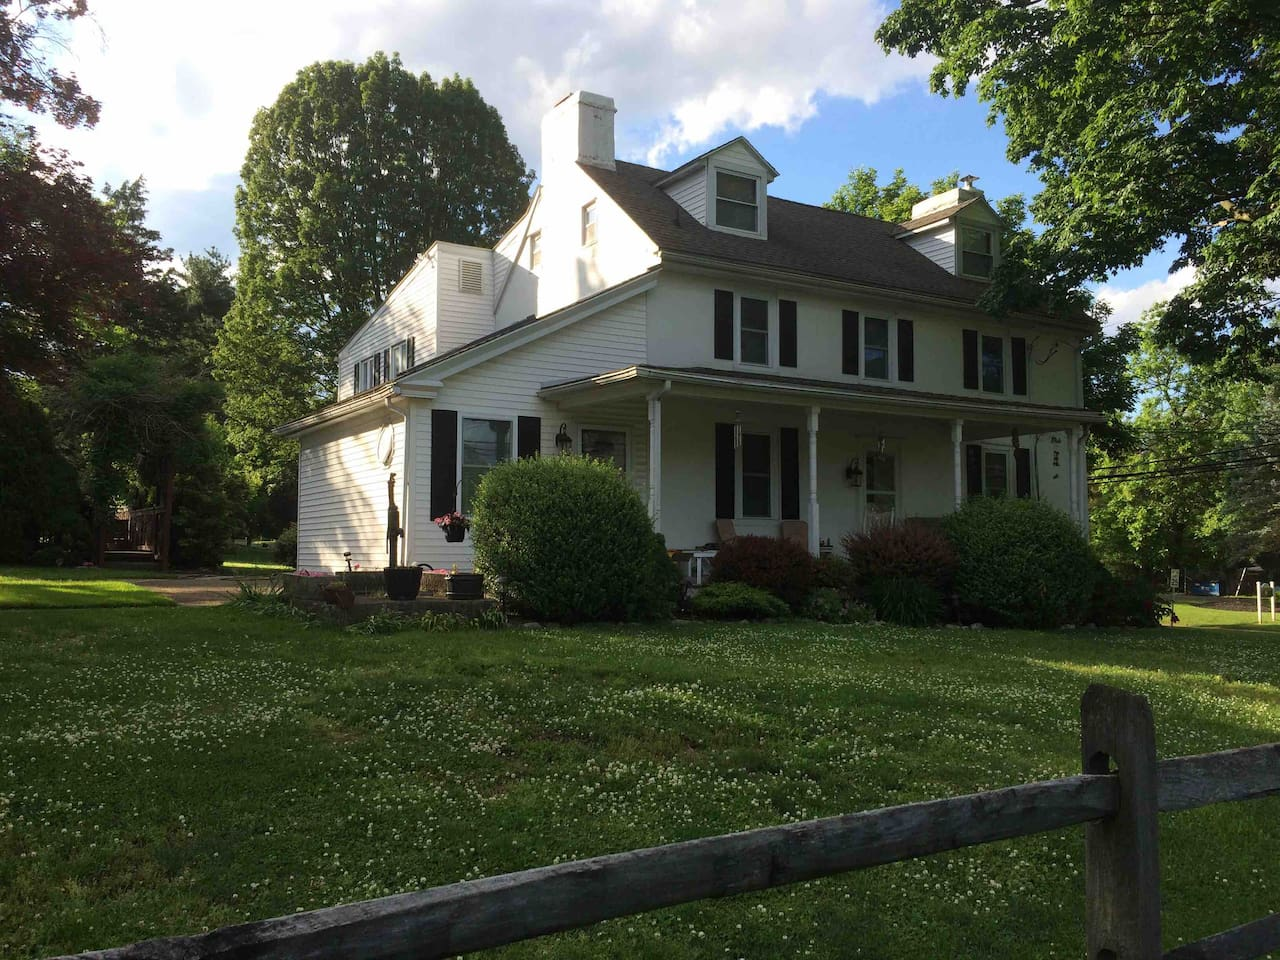 200 + year old Bucks County Farmhouse with an attached, modern, two bedroom apartment with private entrance for our guests.